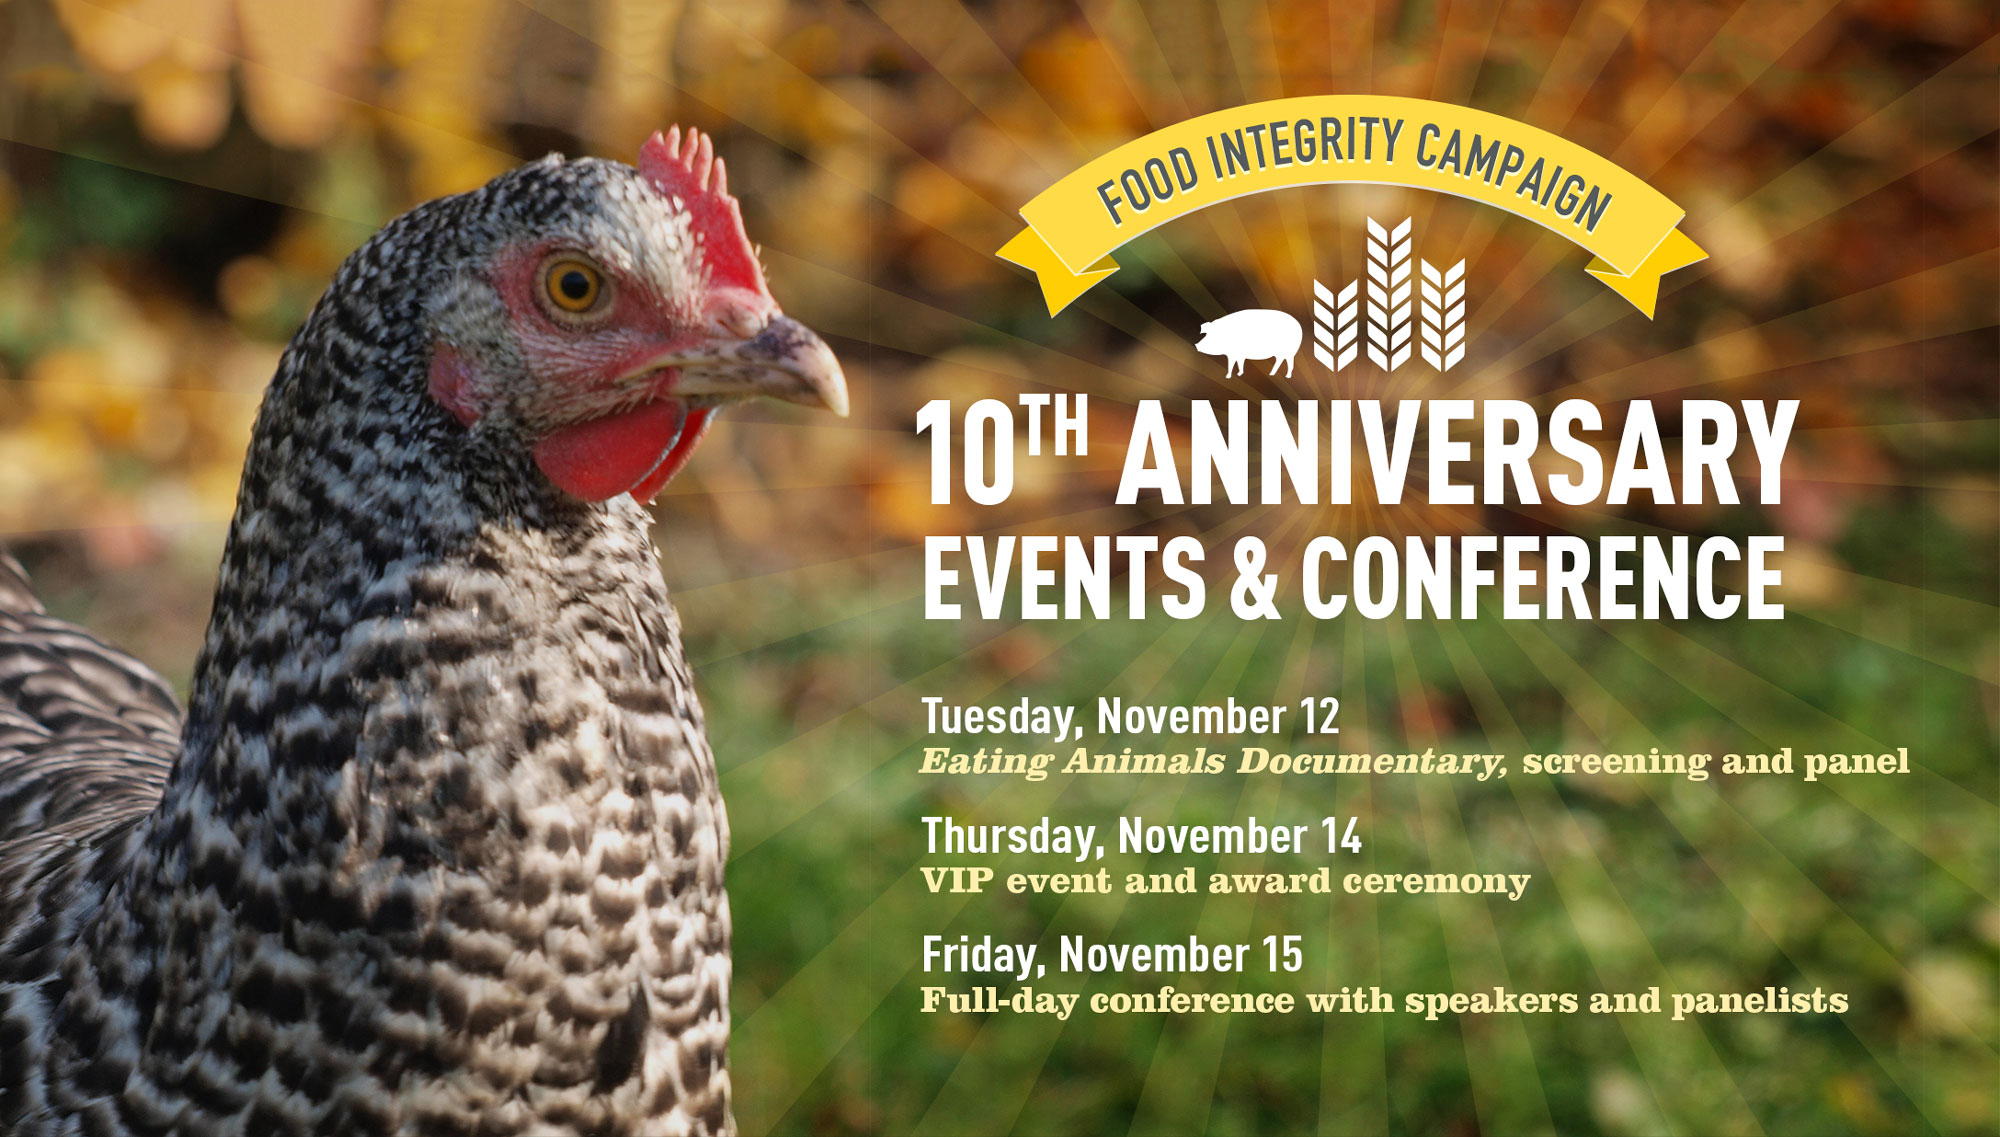 Hero image: Food Integrity Campaign's 10th Anniversary Events & Conference, November 12th, 14th, & 15th 2019